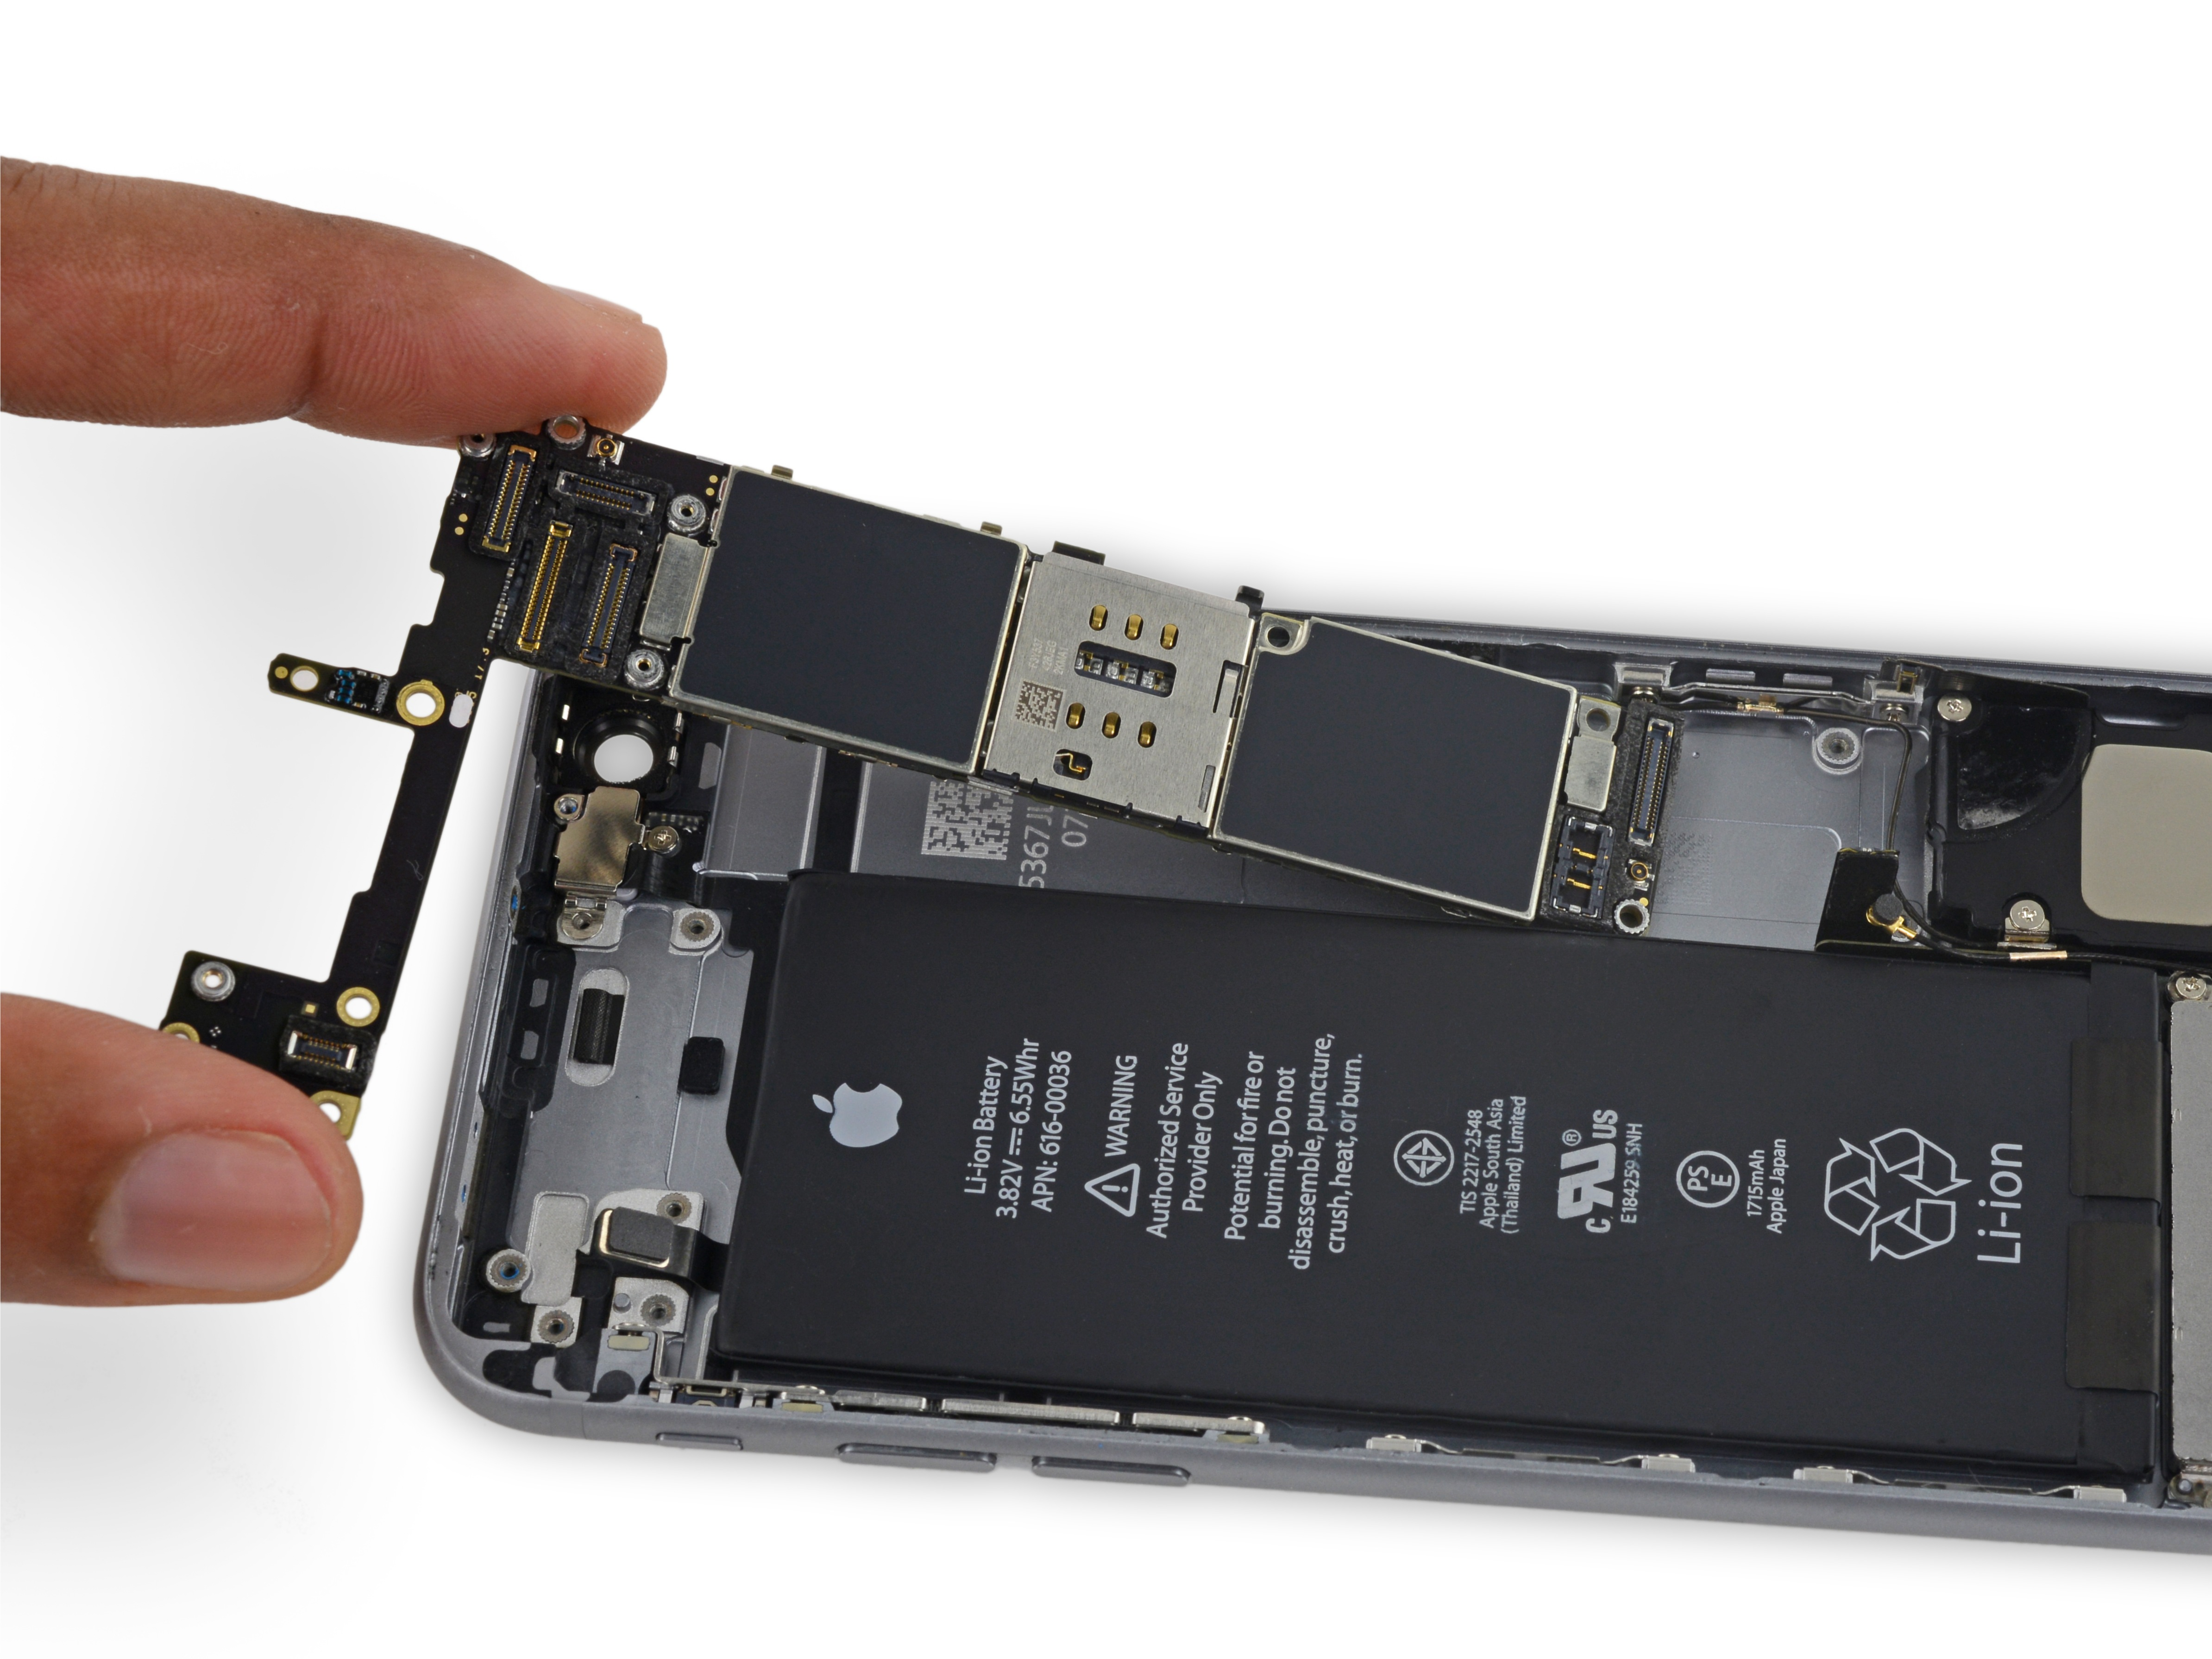 Iphone 6s Logic Board Replacement Ifixit Repair Guide Creative And Cool Ways To Reuse Old Circuit Boards 15 1